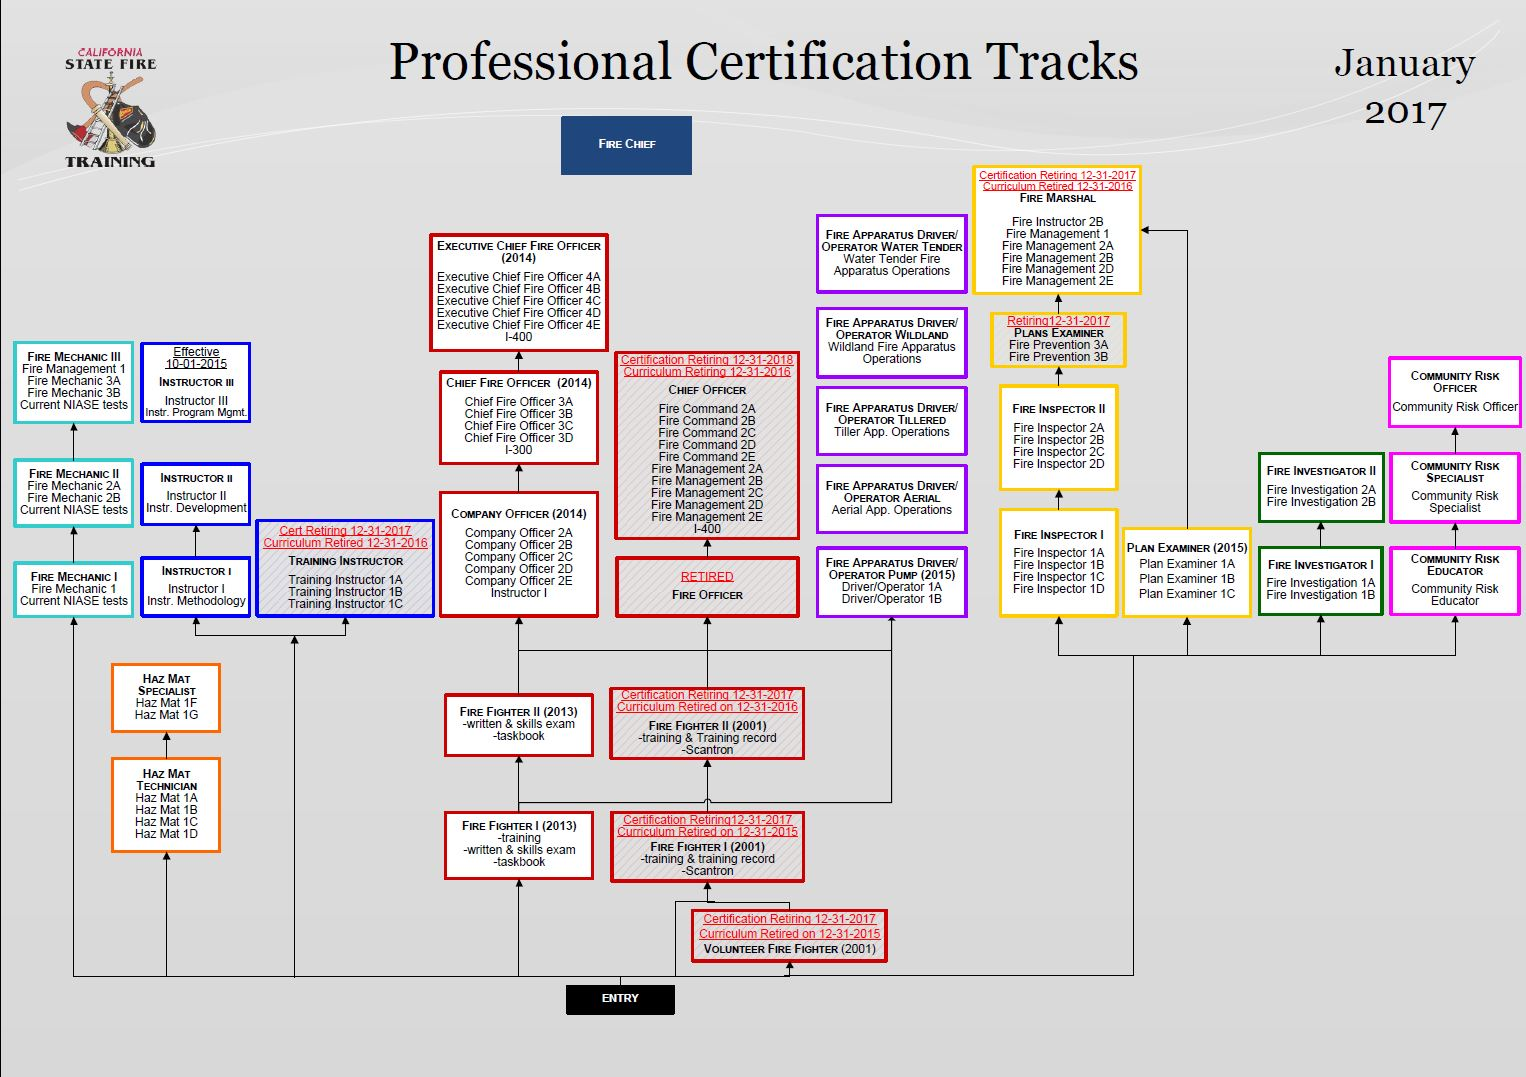 2017 Professional Fire Technology Certification Tracks